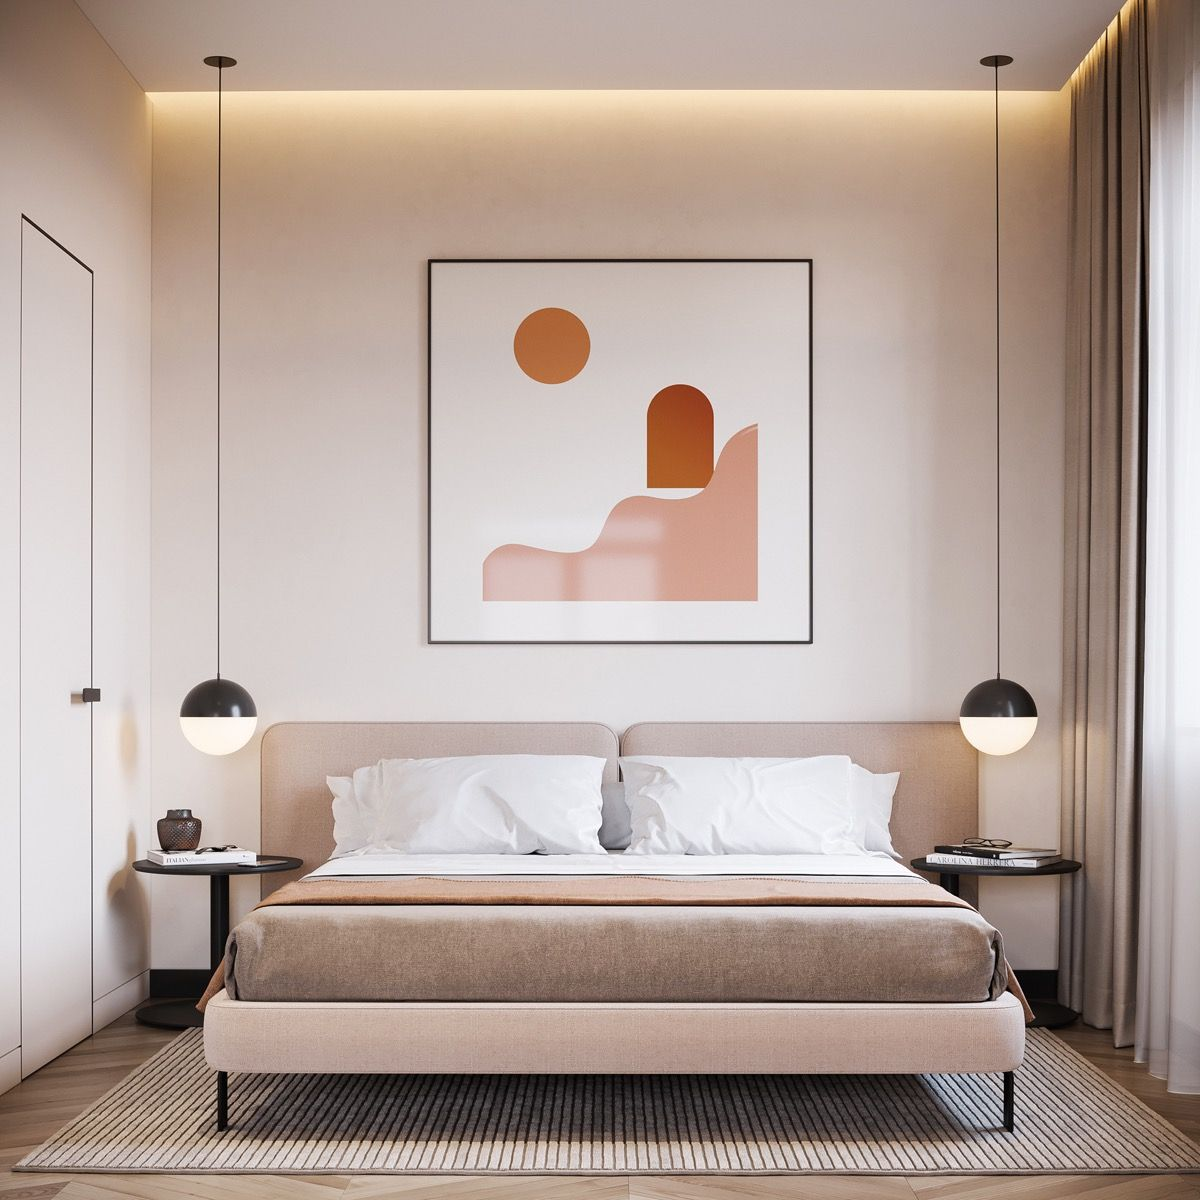 51 Arty Bedroom Designs With Images And Tips To Help You Decorate Yours Bedroom Interior Bedroom Design Arty Bedroom Bedroom interior design examples